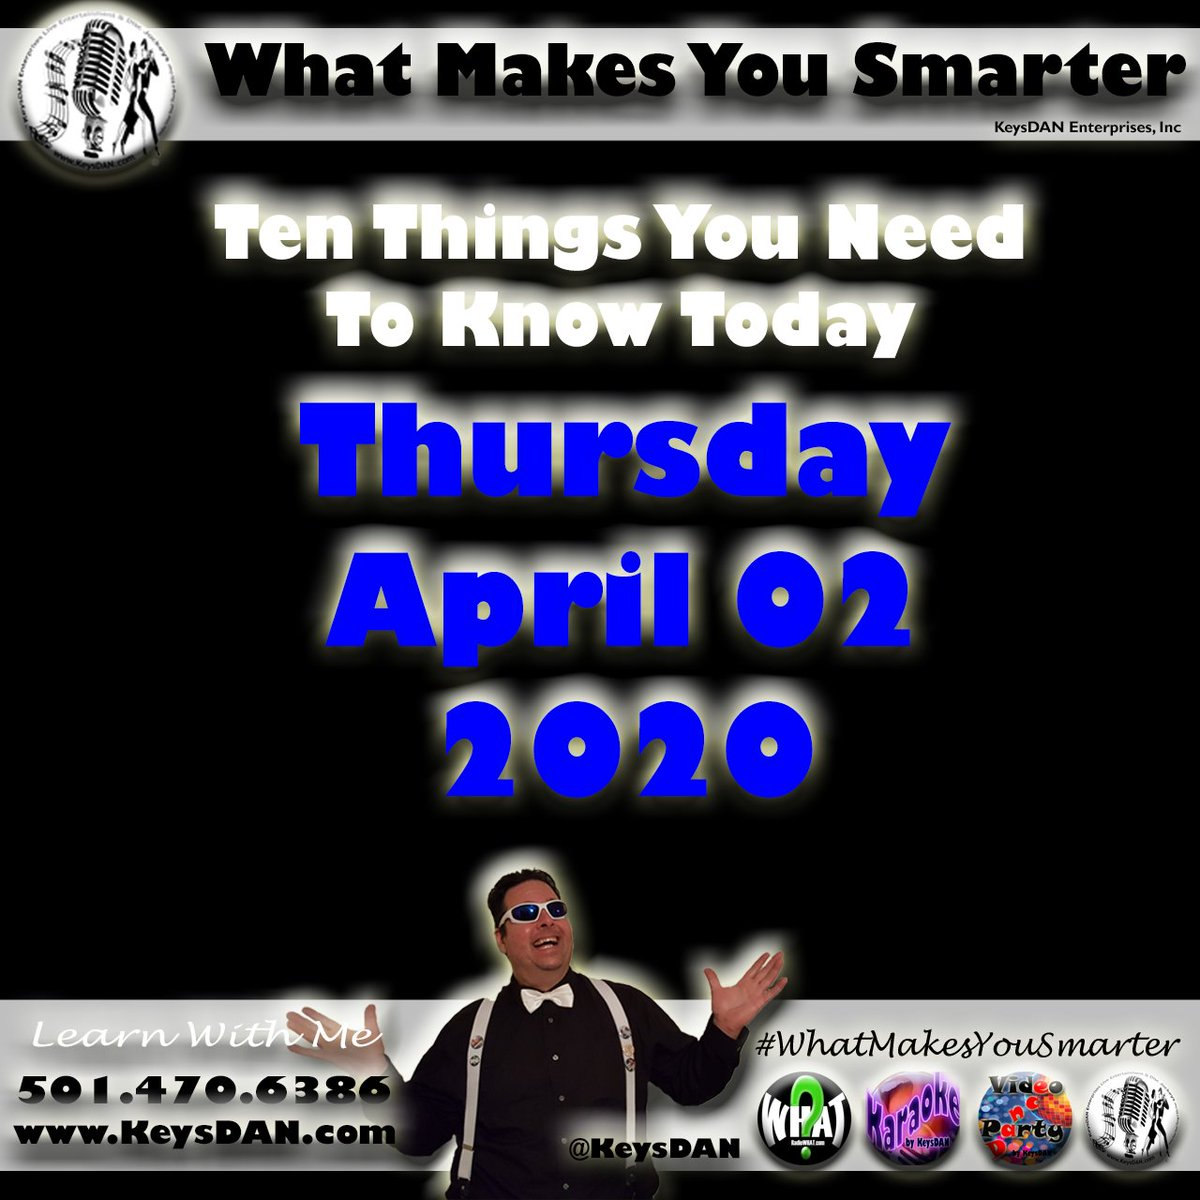 2020-04-02 Ten Things You Need To Know Today What Makes You Smarter #PODCAST #WhatMakesYouSmarter @KeysDAN https://anchor.fm/whatmakesyousmarter/episodes/2020-04-02-Ten-Things-You-Need-To-Know-Today-What-Makes-You-Smarter-PODCAST-WhatMakesYouSmarter-KeysDAN-eca2jt… #podcastsdotcom #podcasts #podcast #podcasting #podcaster #PodernFamily #podcastlisten #podcastinglife #podcast#podcastlife pic.twitter.com/5mmANSUEfG